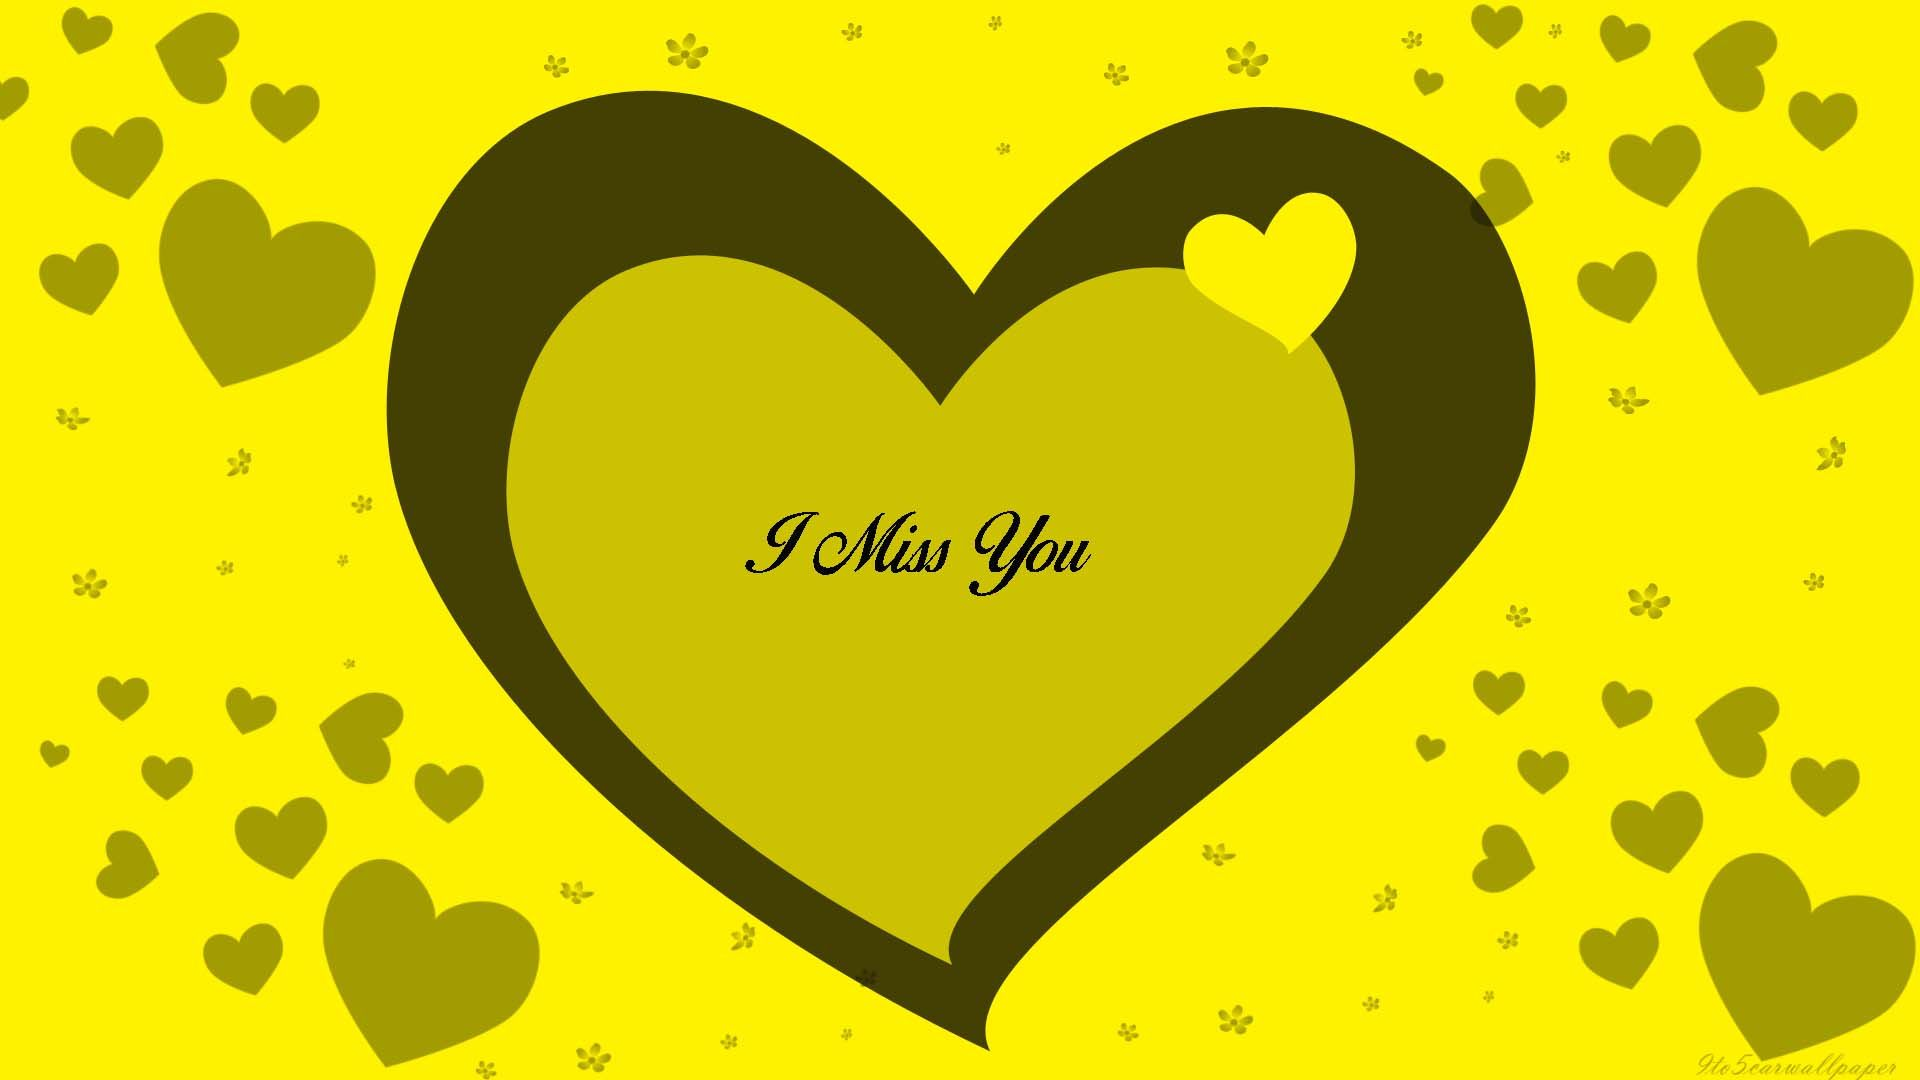 I Miss You My Love Wallpapers Images Download I Miss You Wallpaper Miss You Images Love Wallpaper